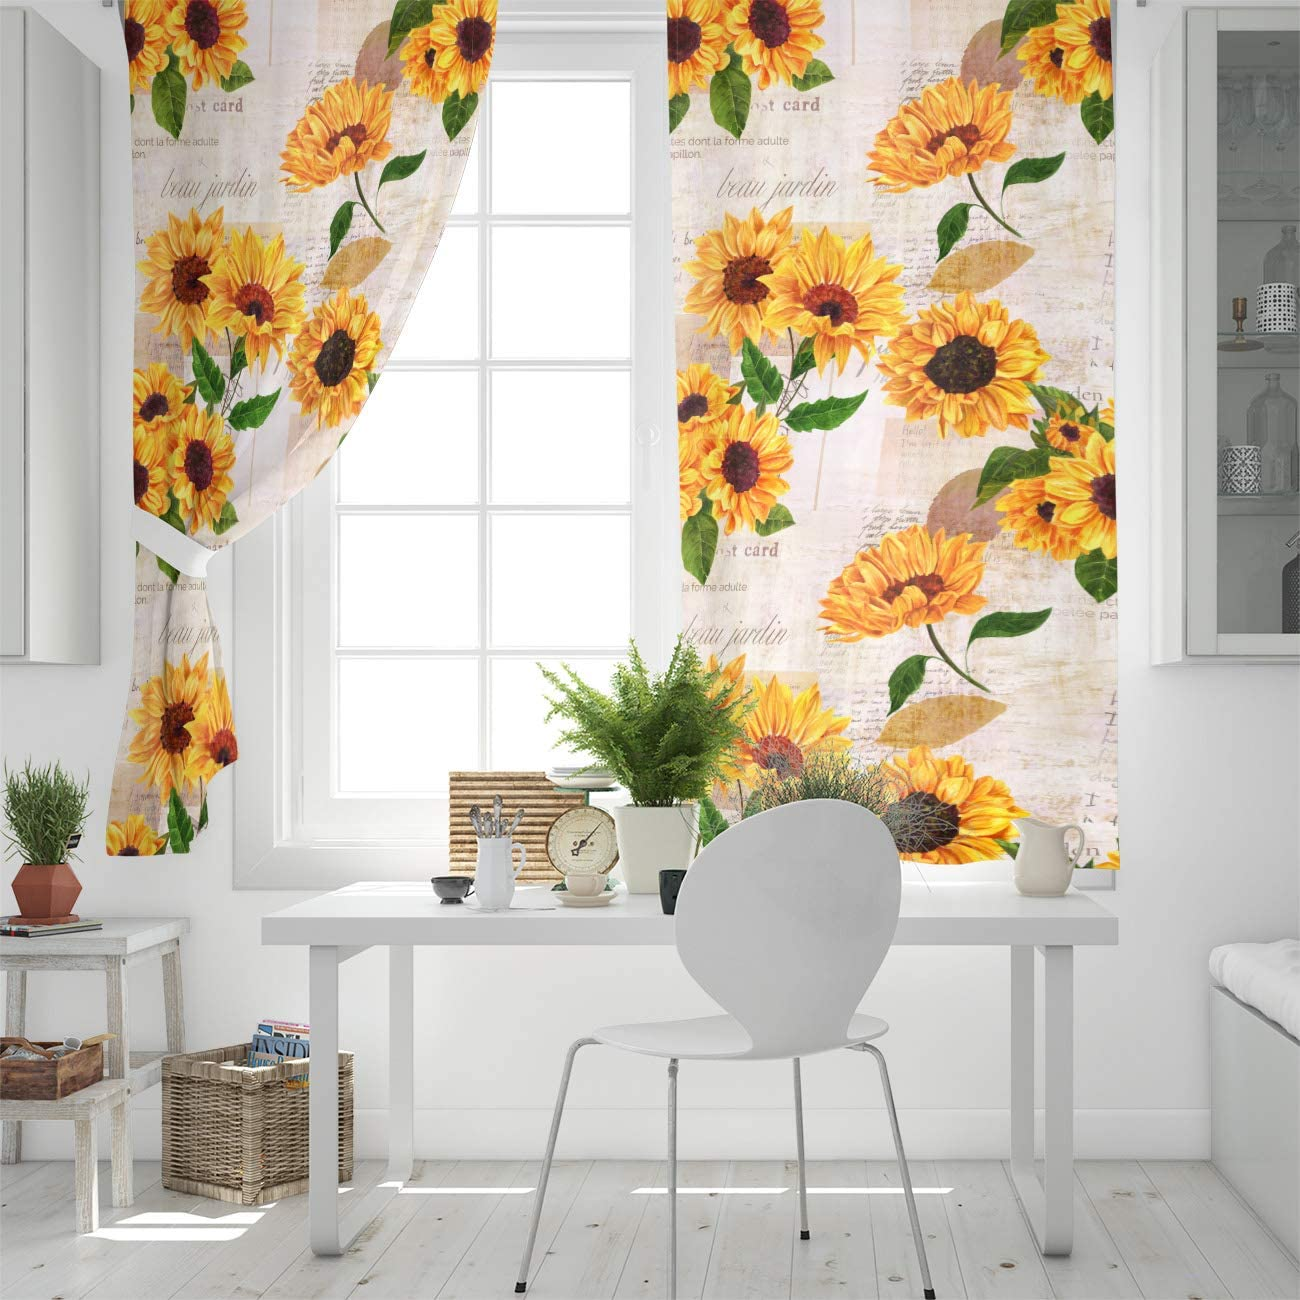 Home Kitchen T H Draperies Curtains Set Elegant Curtain By 2 Panels For Sliding Glass Door Patio Bedroom Living Room Sunflower With Newspaper Background Window 54 W